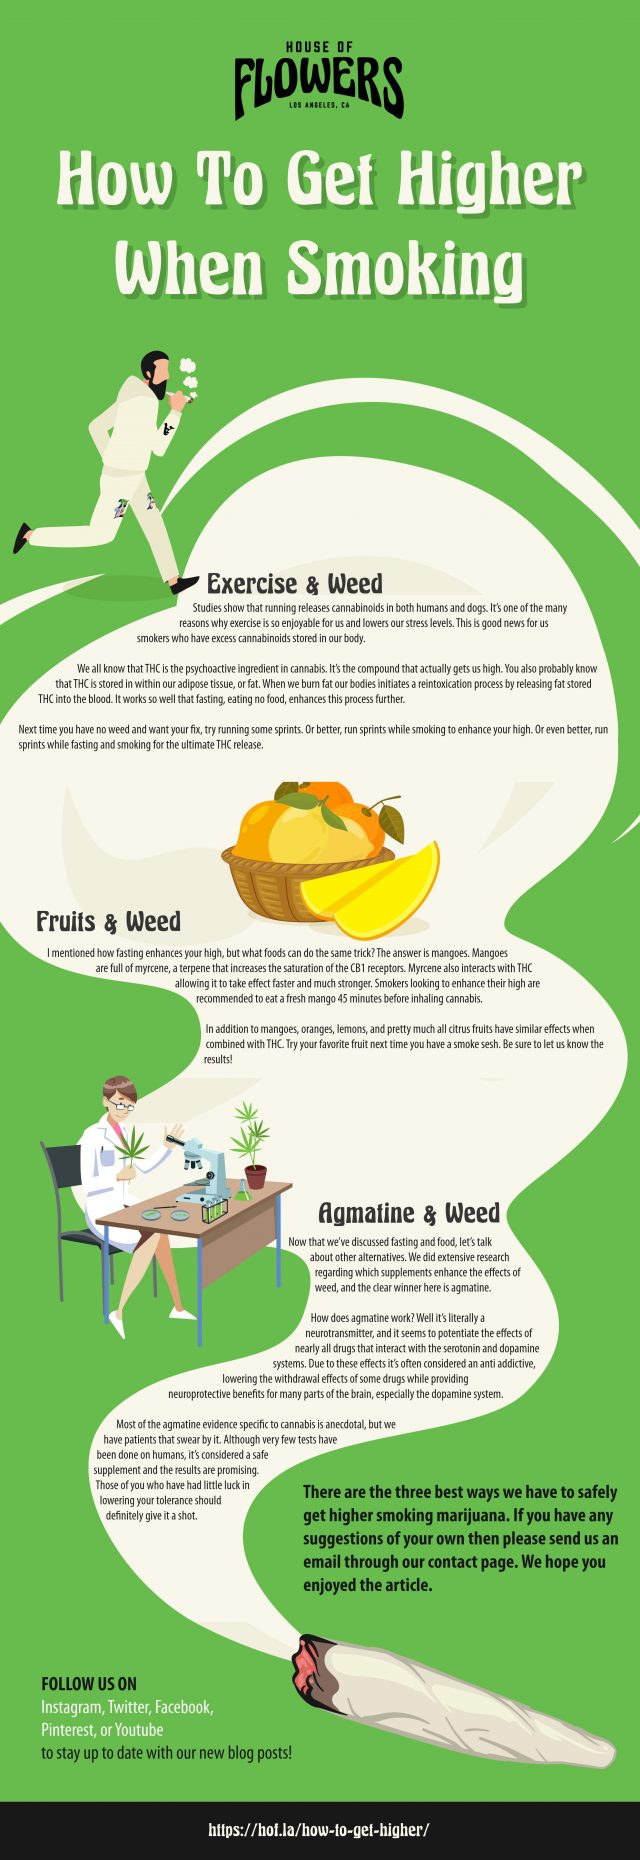 infographic describing how to get higher when smoking weed